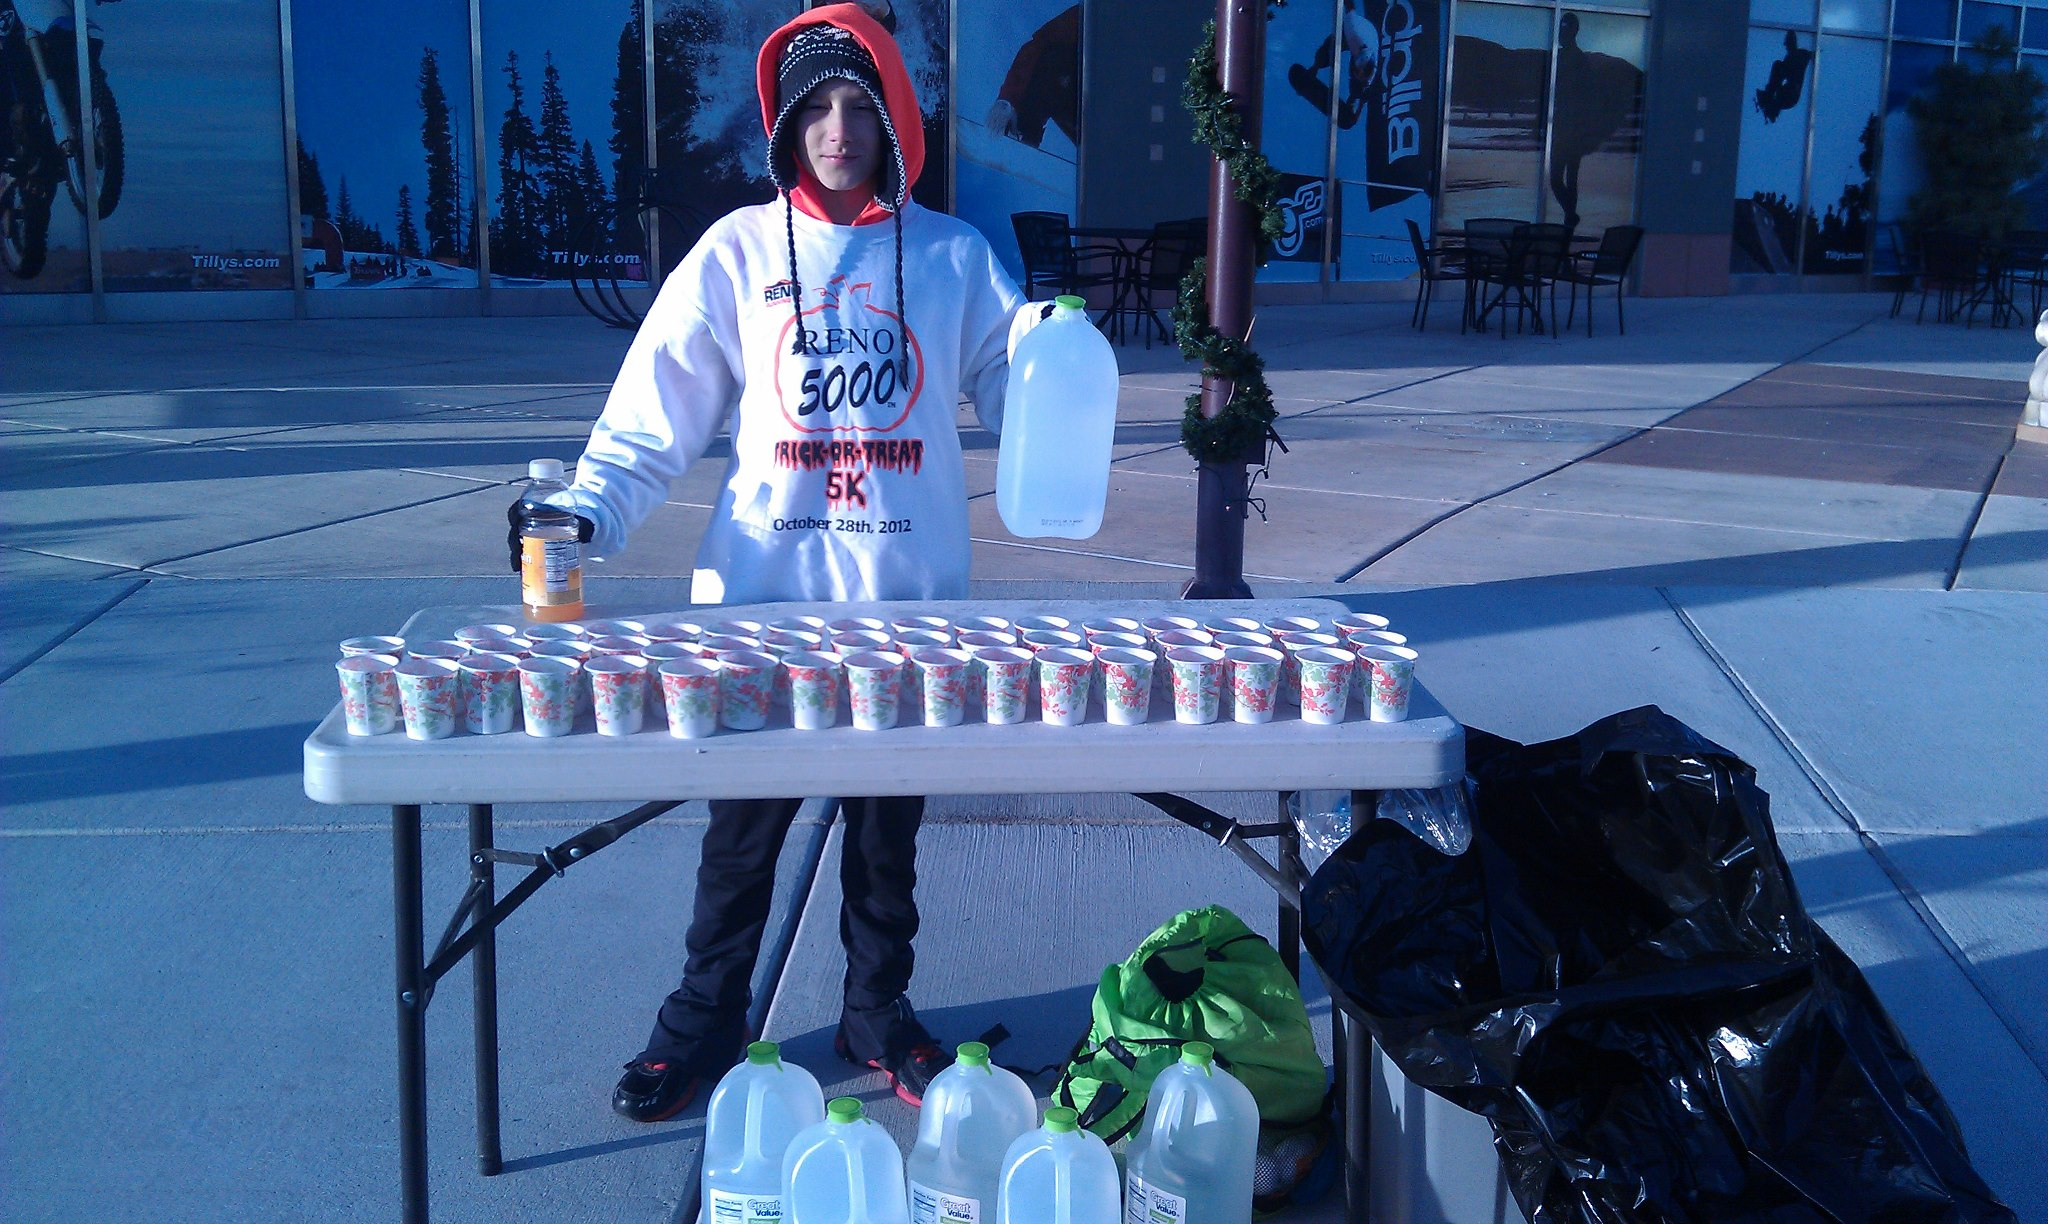 Taylor just knows how to work an aid station!!  My kids have all volunteered at races to see how hard it is to put them on - especially if they're well run